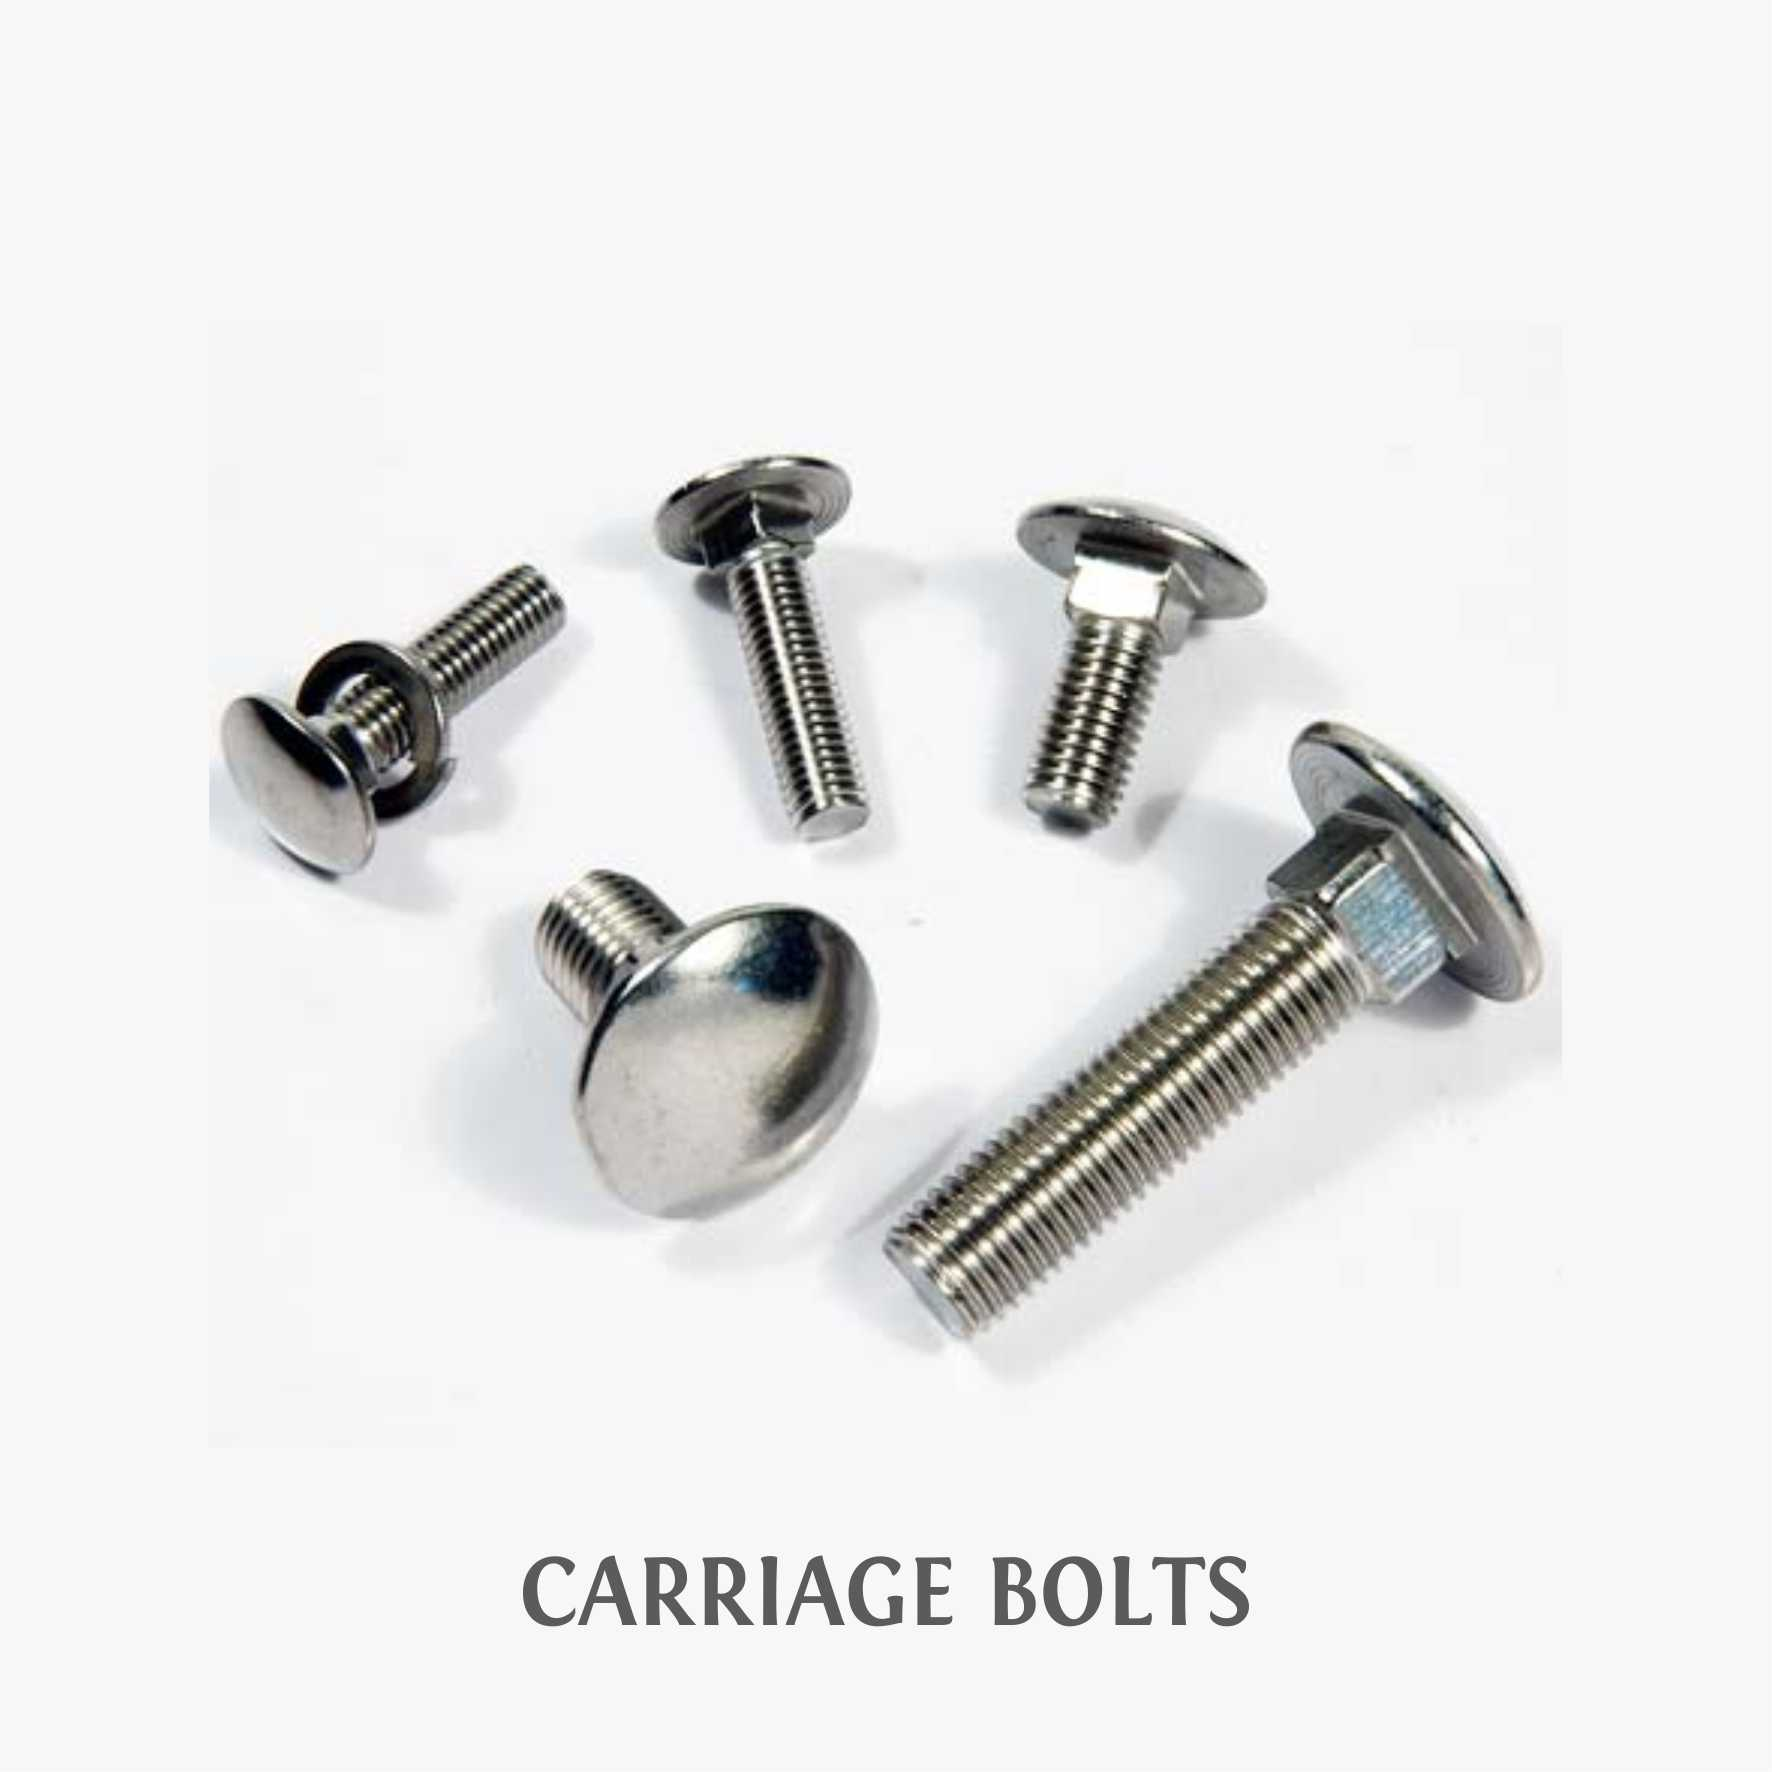 3-CARRIAGE BOLTS